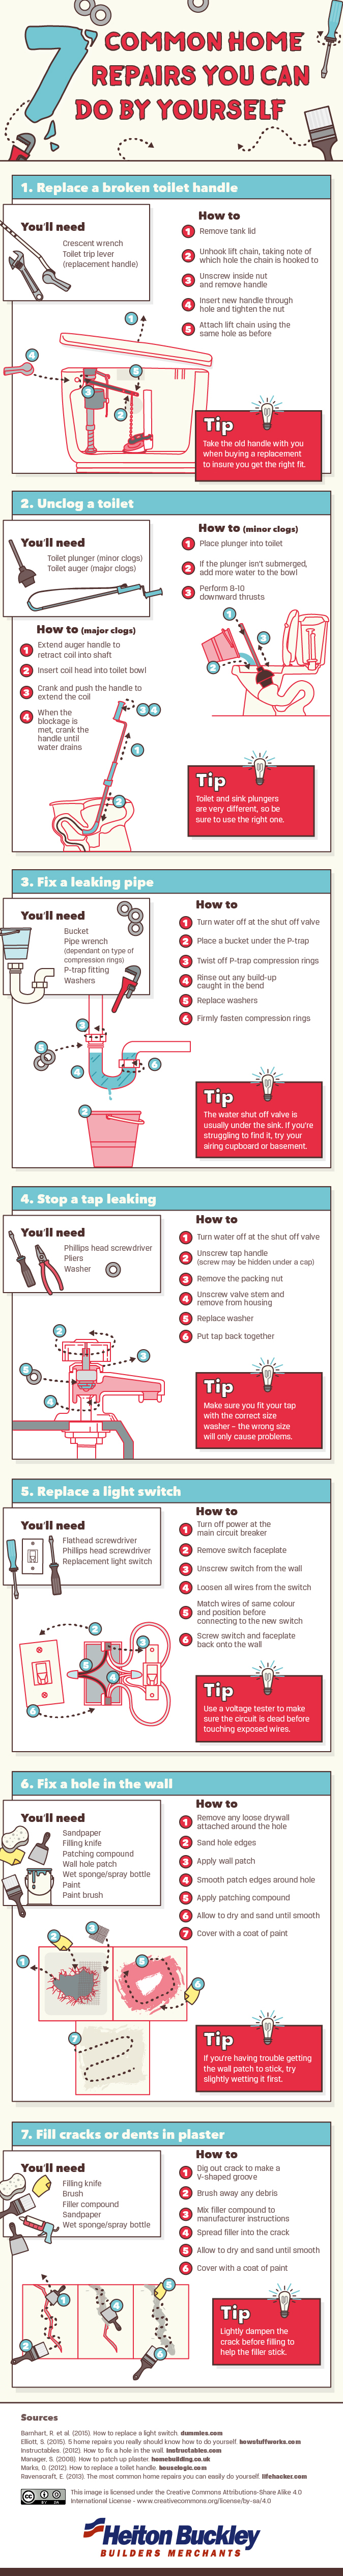 Common Home Repairs You Can Do Yourself.jpg